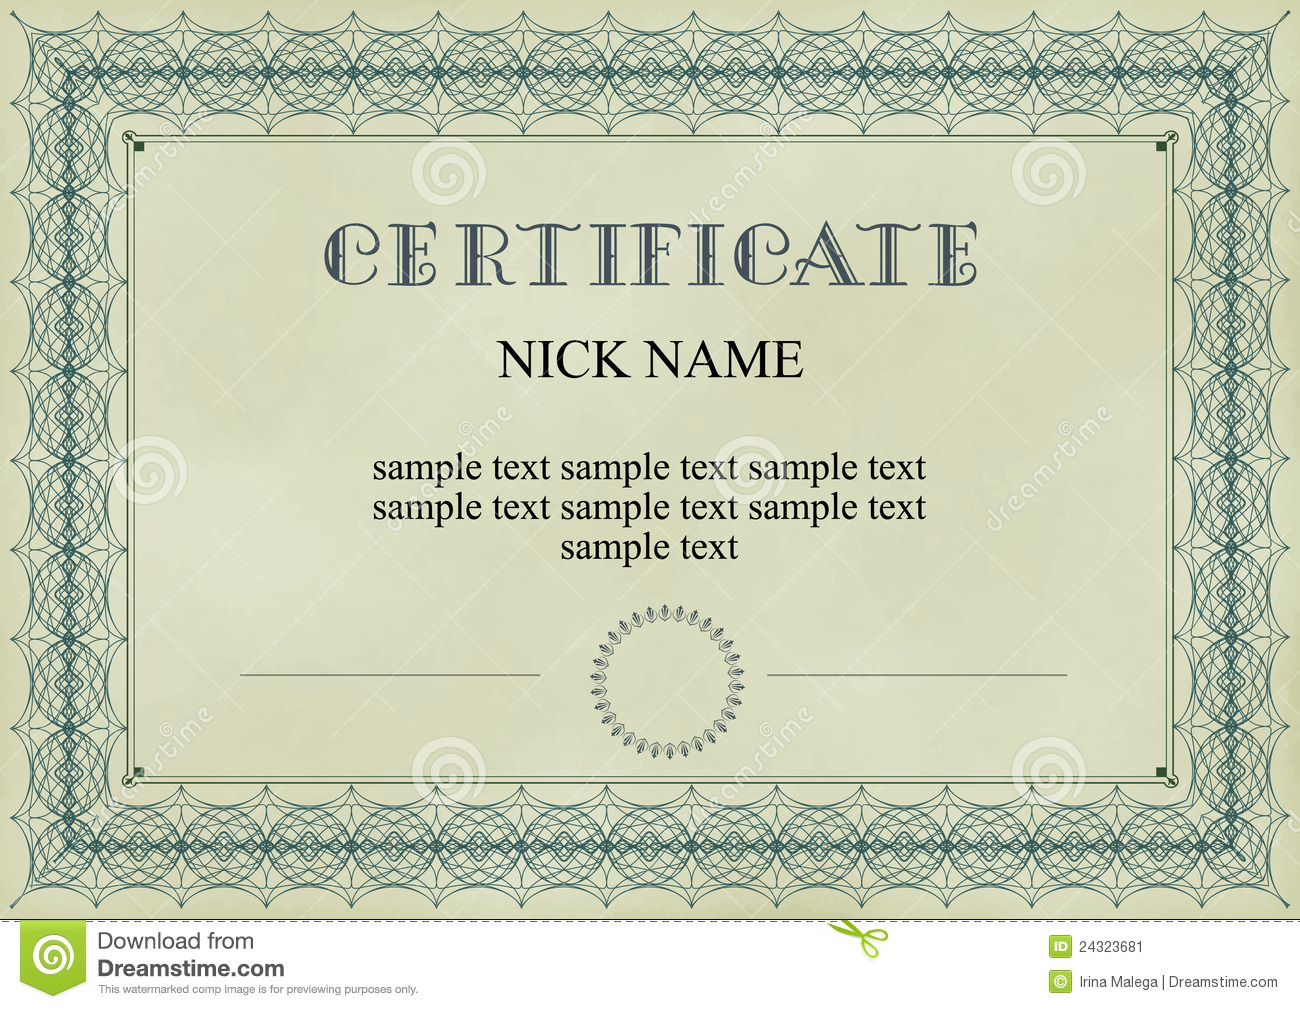 certificate template clipart resume example certificate template clipart gift certificate templates gift certificate factory certificate diploma for print stock image image